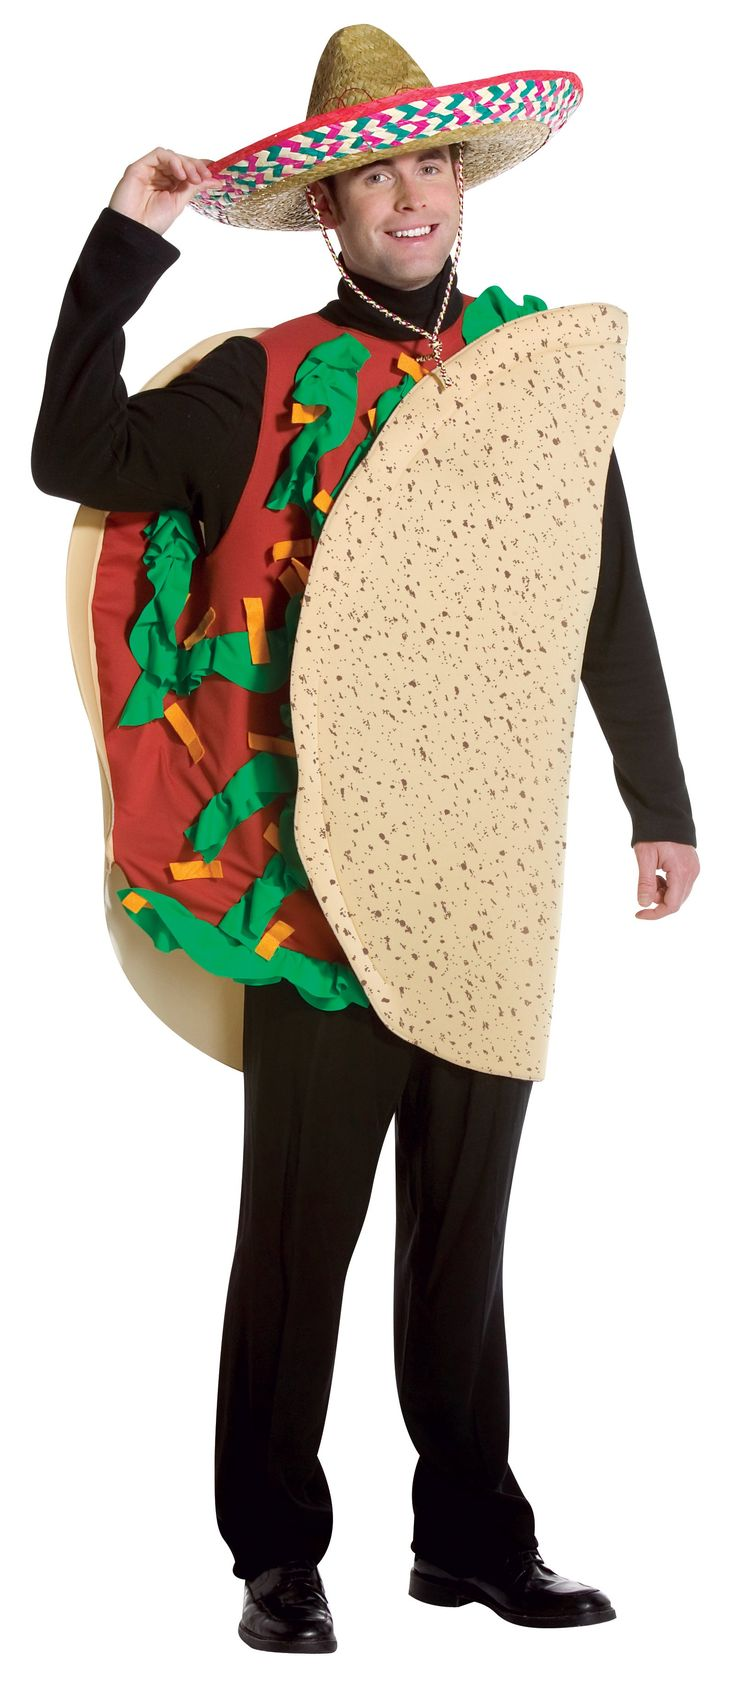 68 best Mexican fiesta, costume ideas images on Pinterest